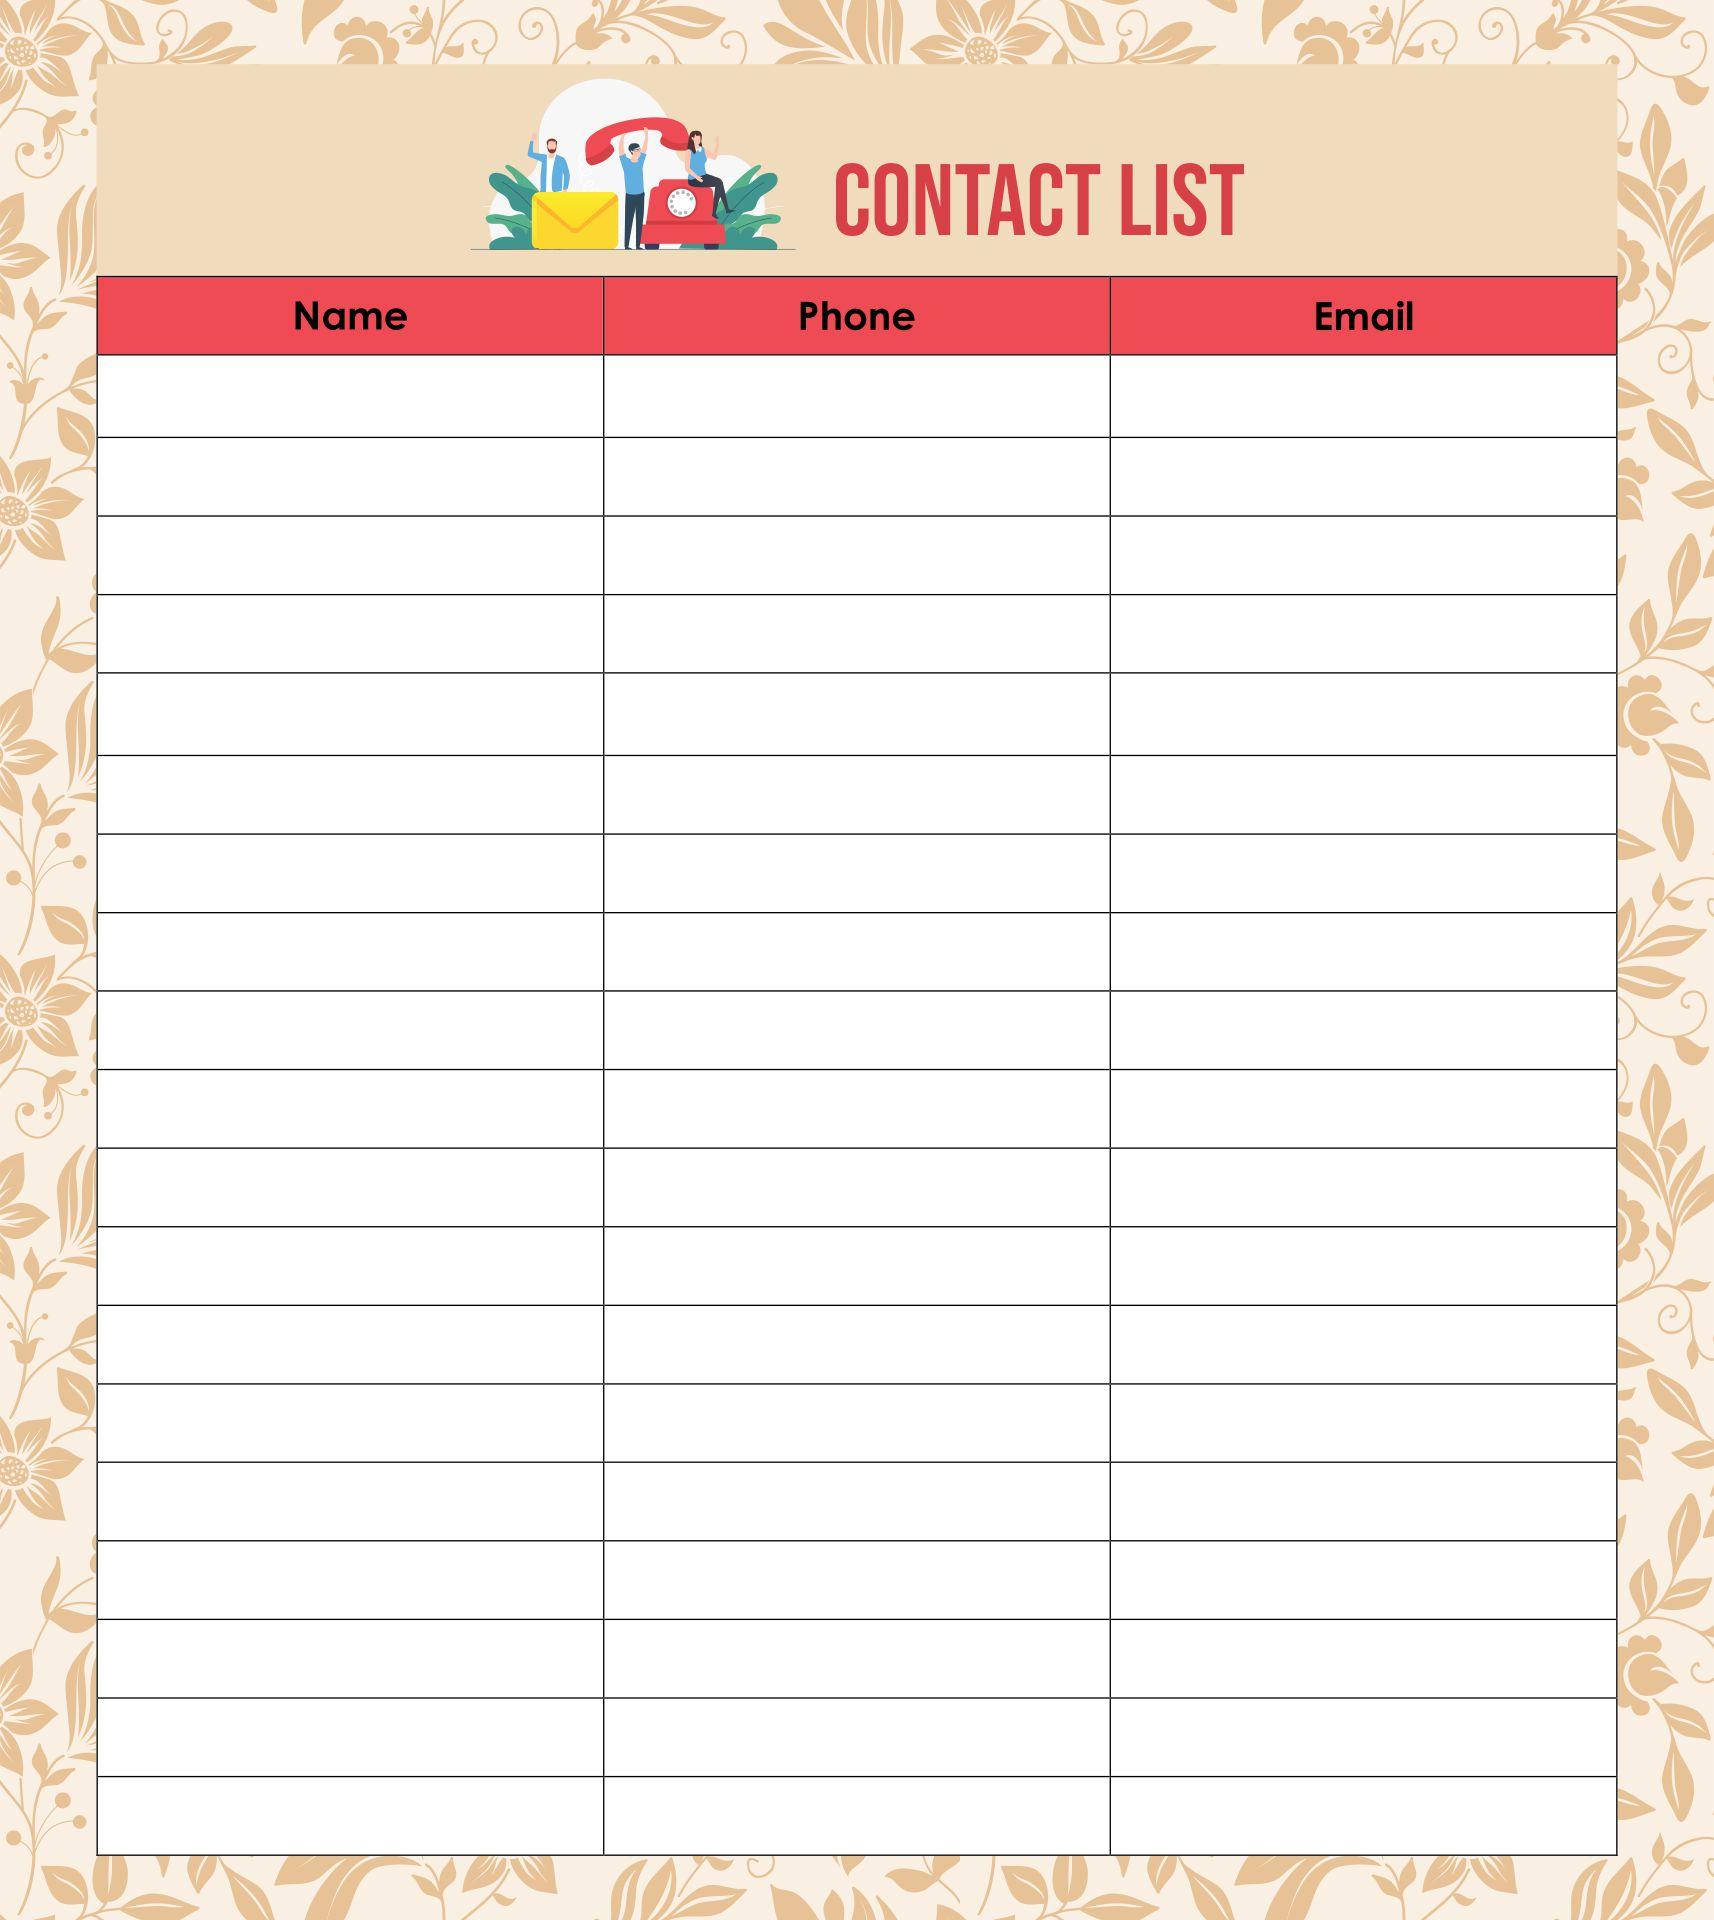 7 Best Images of Phone Contact List Template Printable - Printable Phone List Template. Free Printable Contact List and Free Printable Contact ...